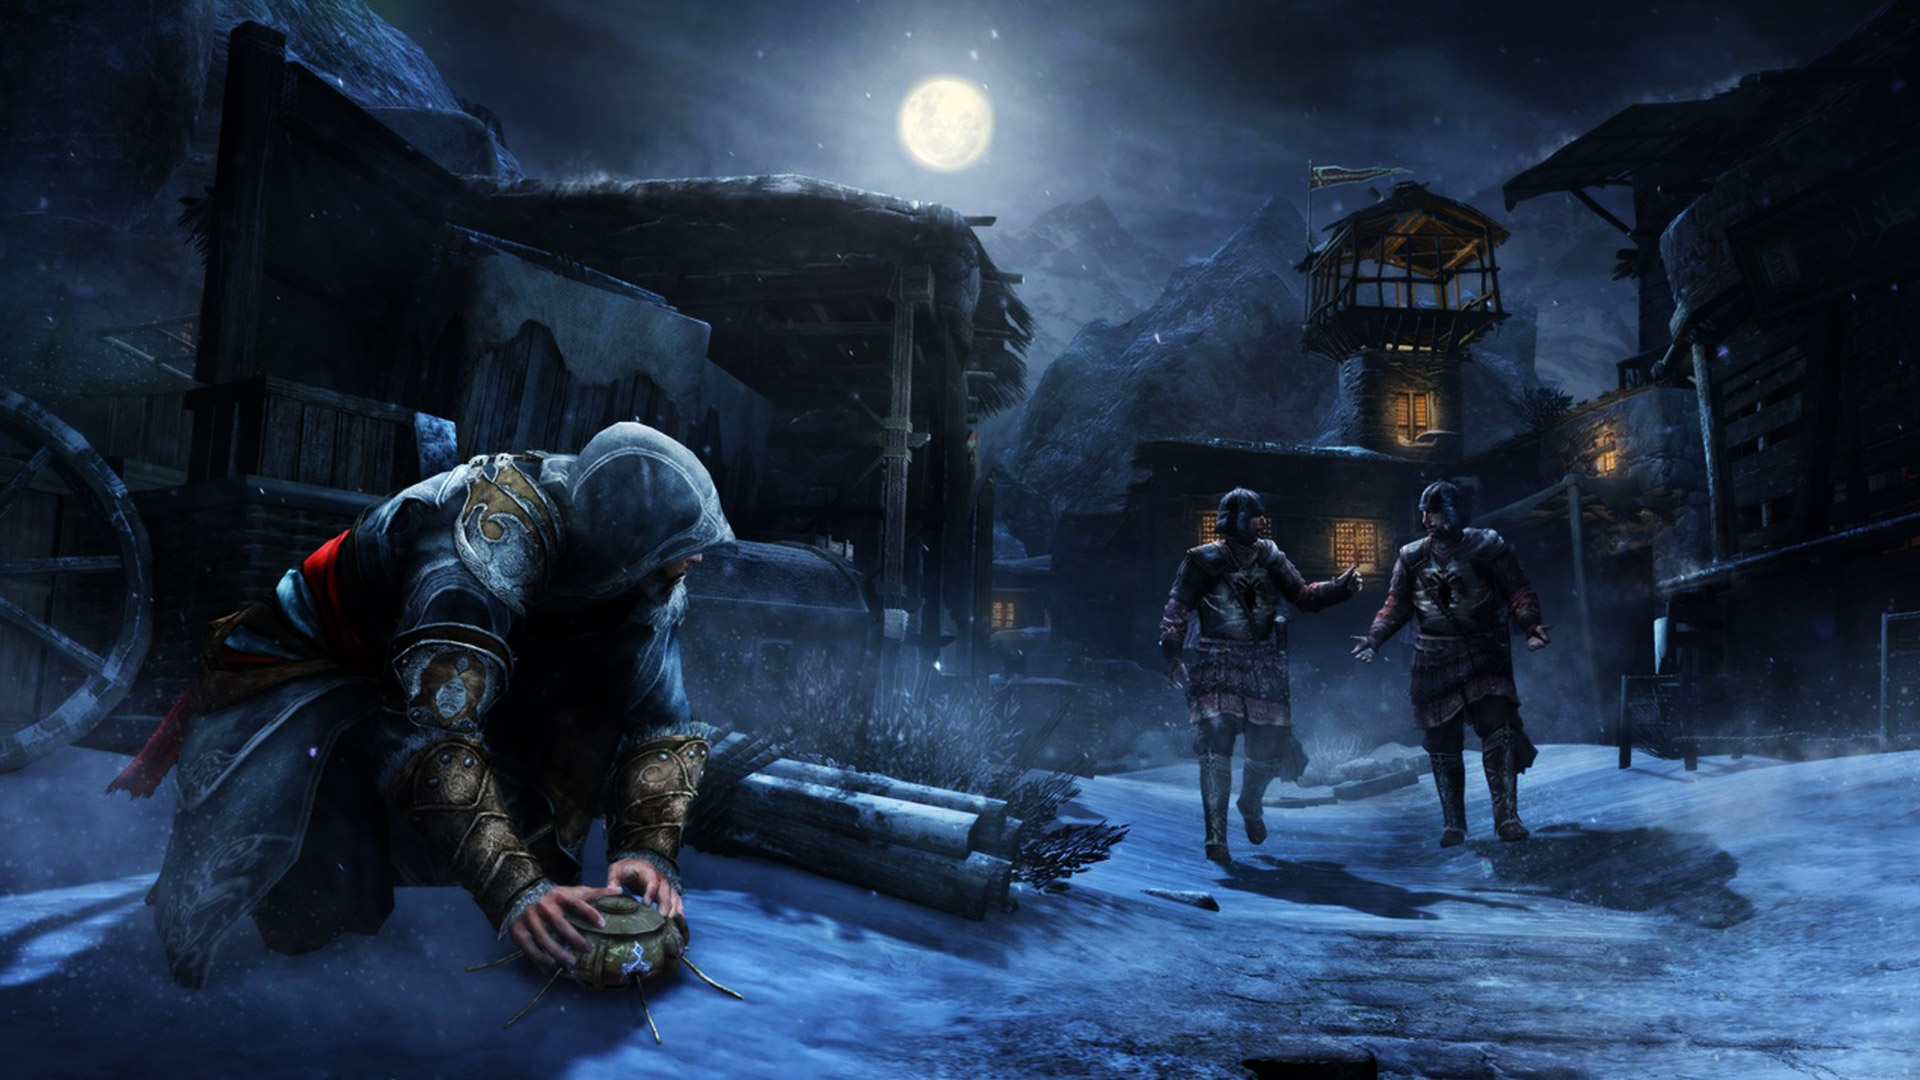 Assassin's Creed: Revelations Wallpaper in 1920x1080